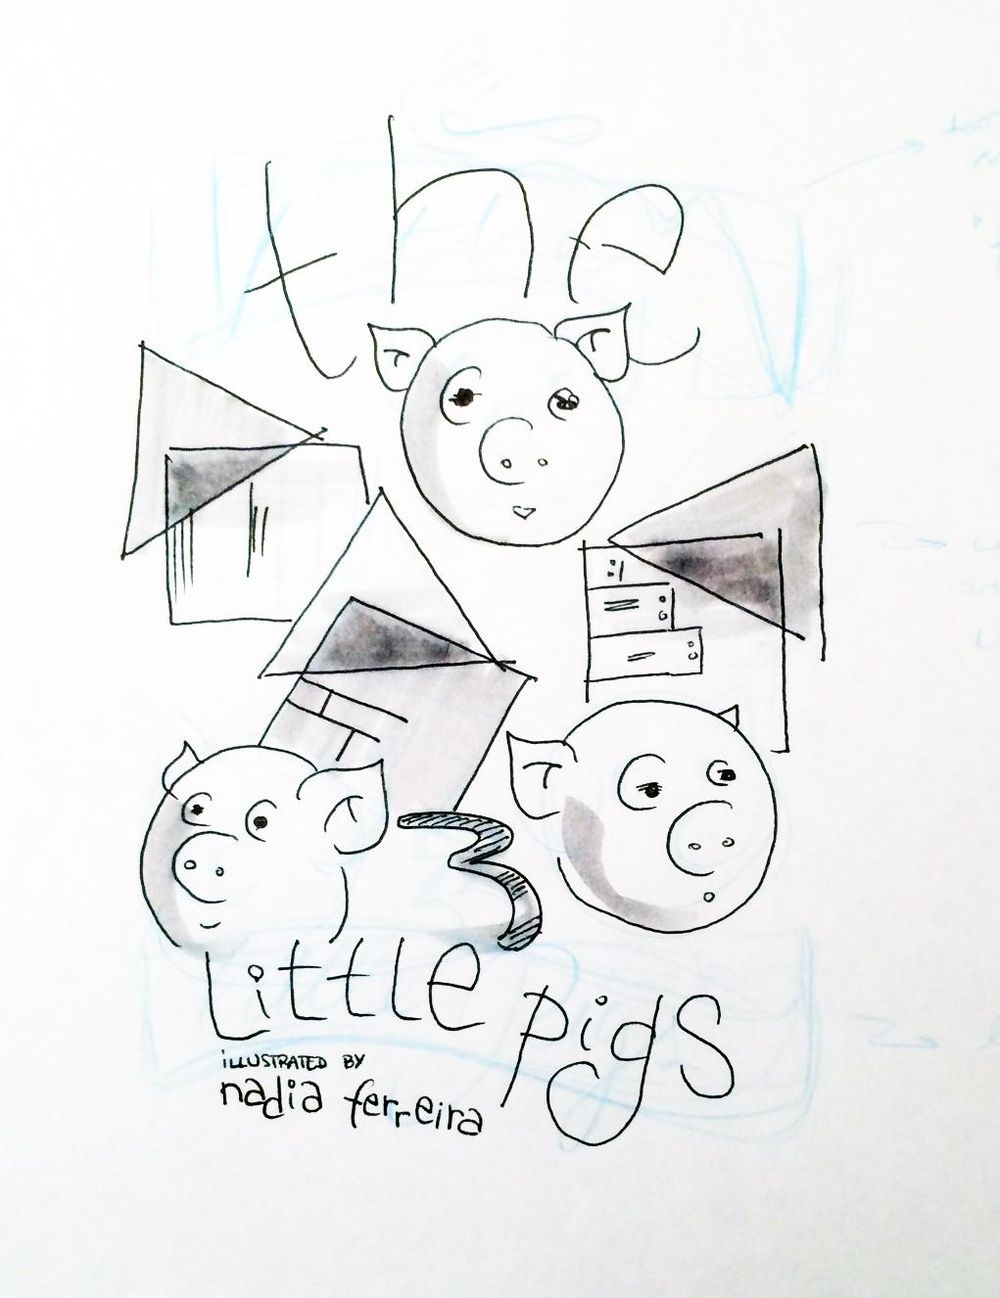 Illustration in Practice - Three Little Pigs project - image 4 - student project